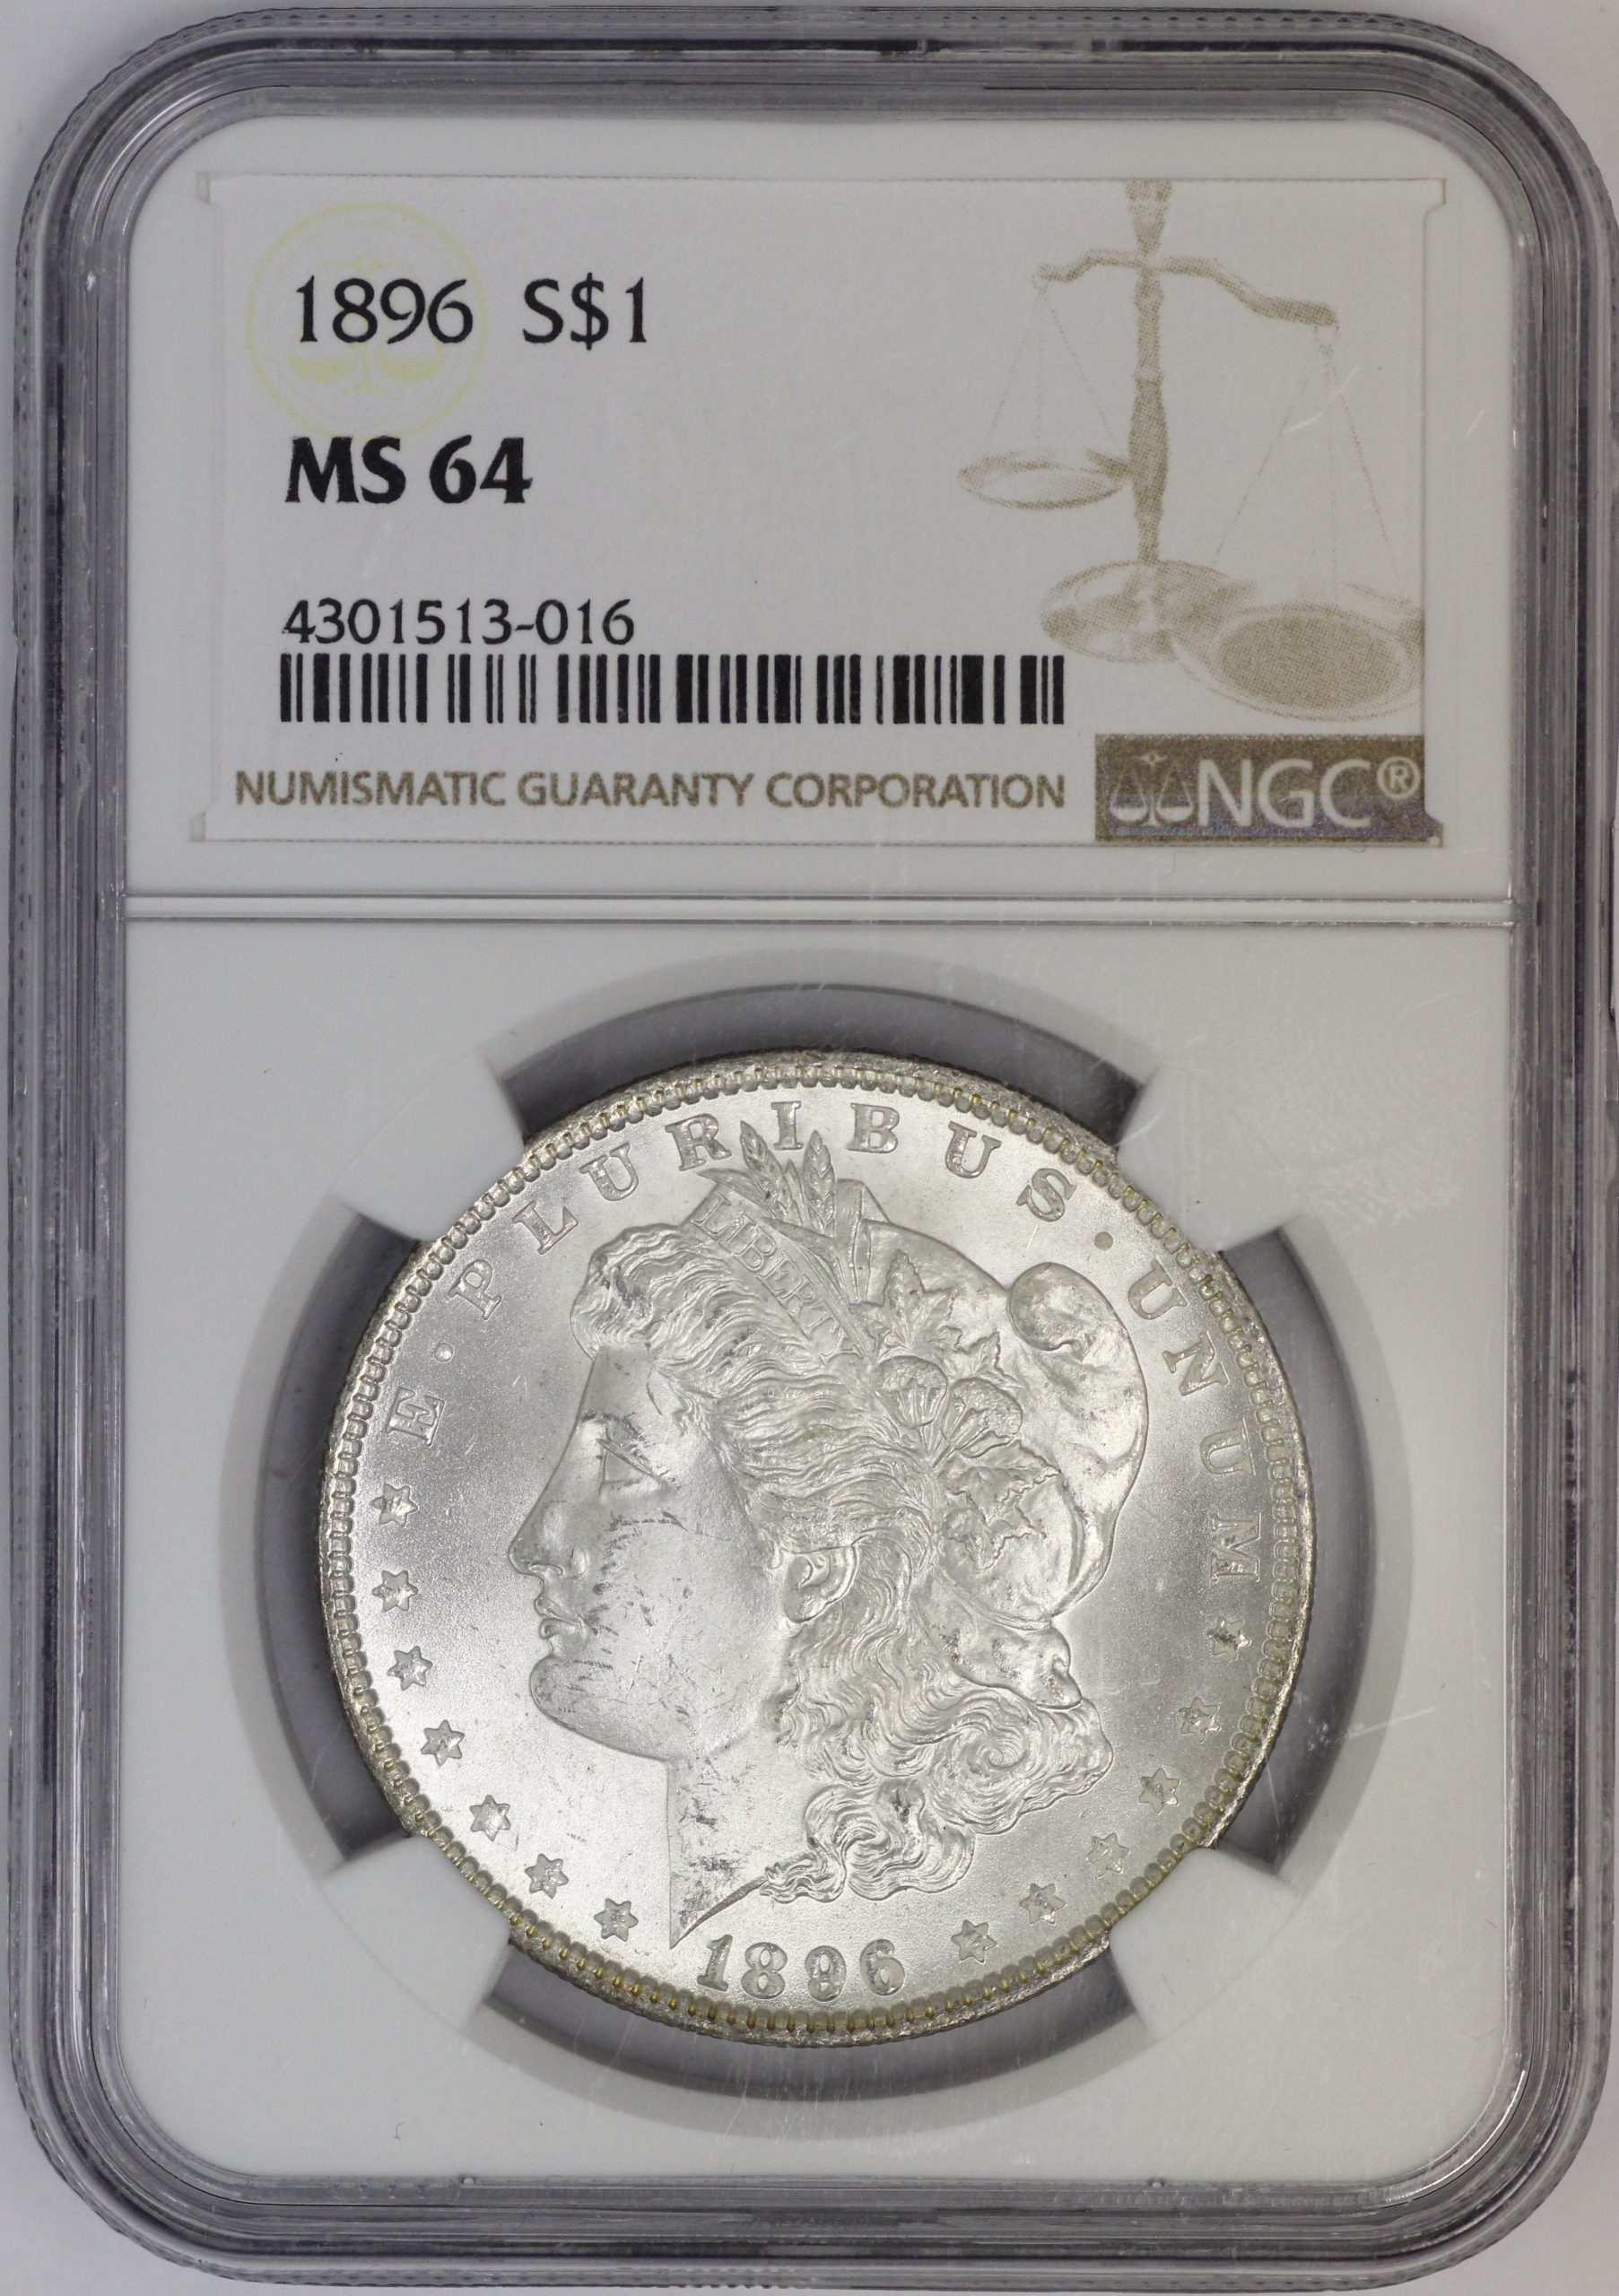 1900-O Morgan Silver Dollar NGC MS 64 White.